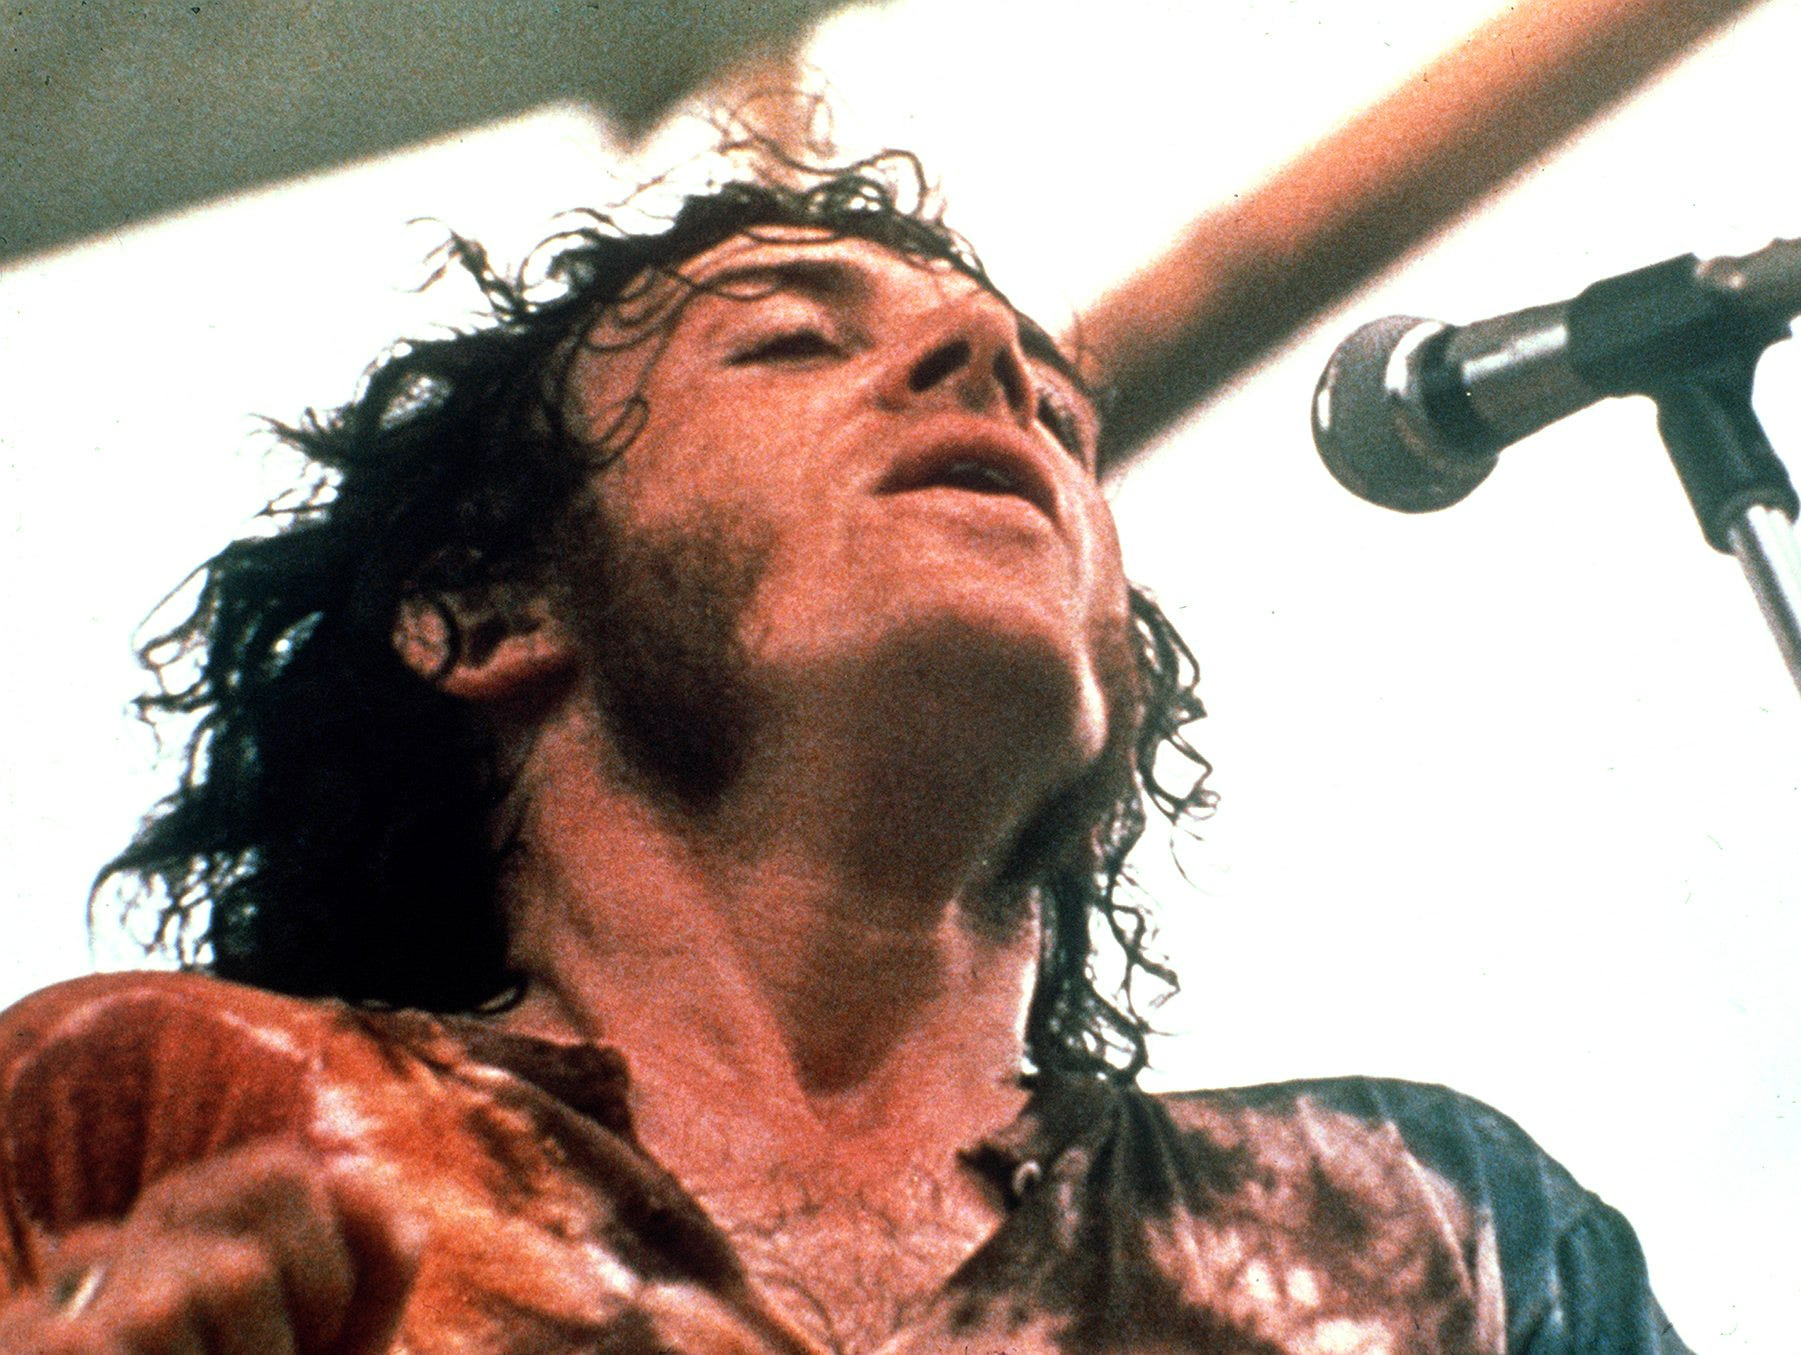 Joe Cocker performs during the Woodstock Music Festival in Bethel, N.Y., in this Aug. 1969 file photo.